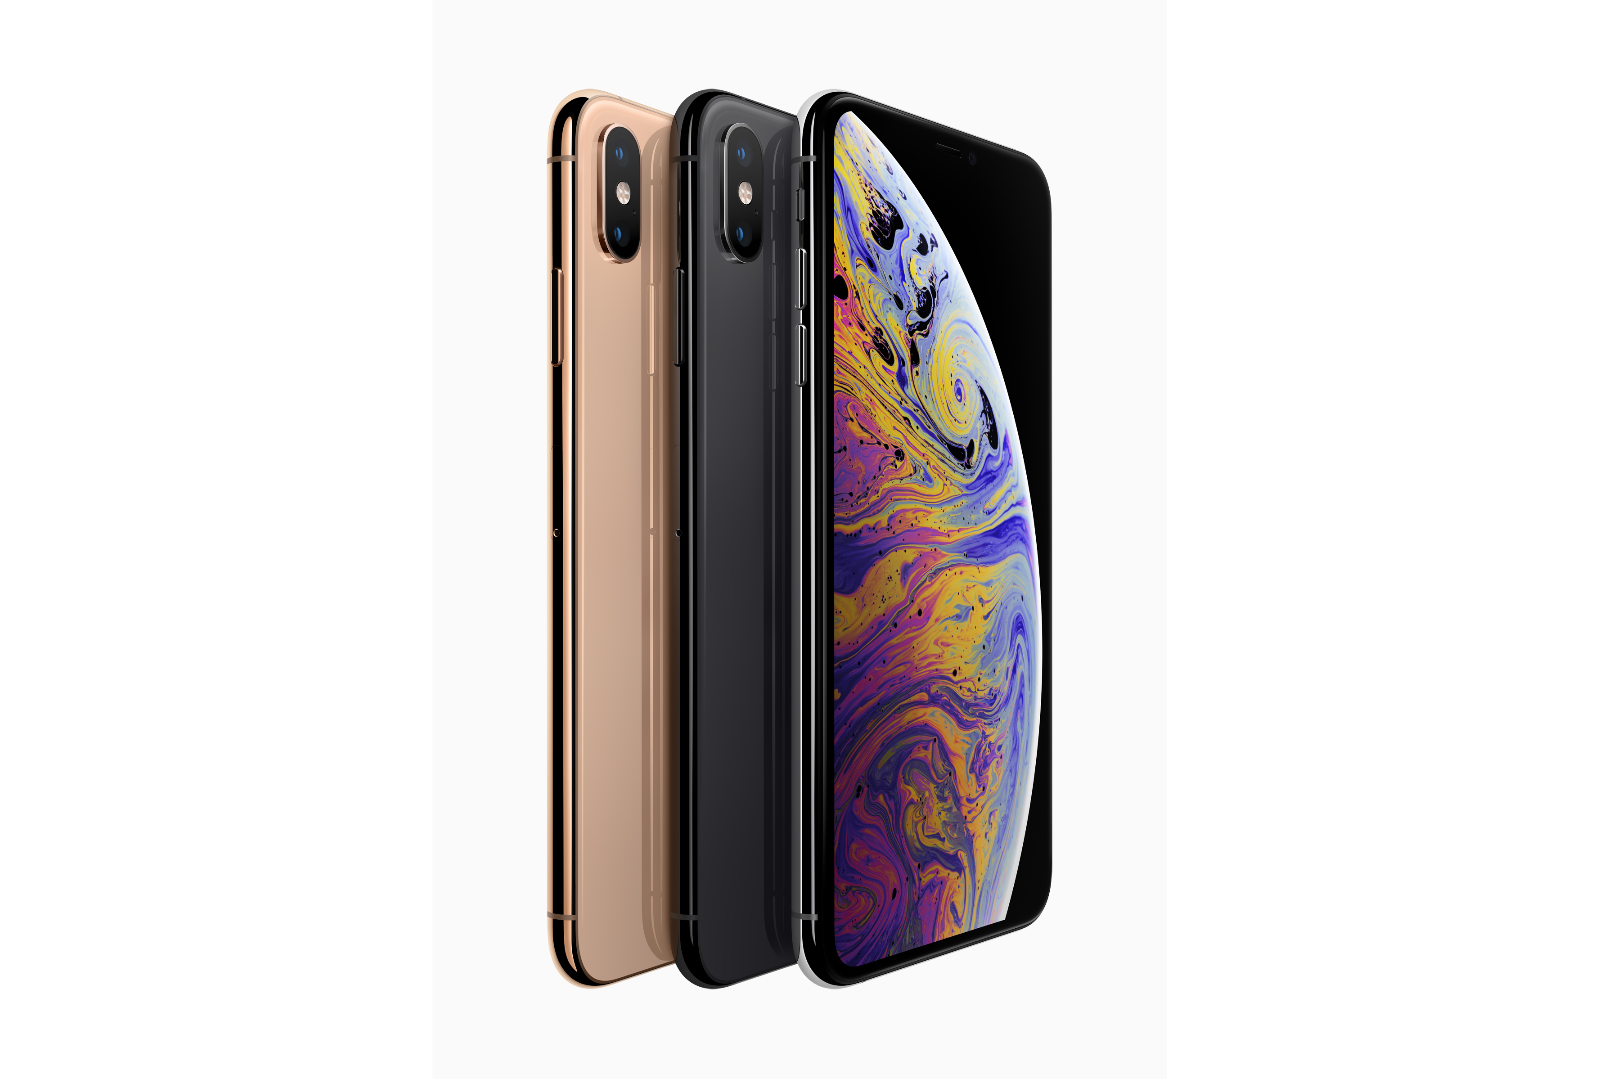 iphone xr iphone xs max